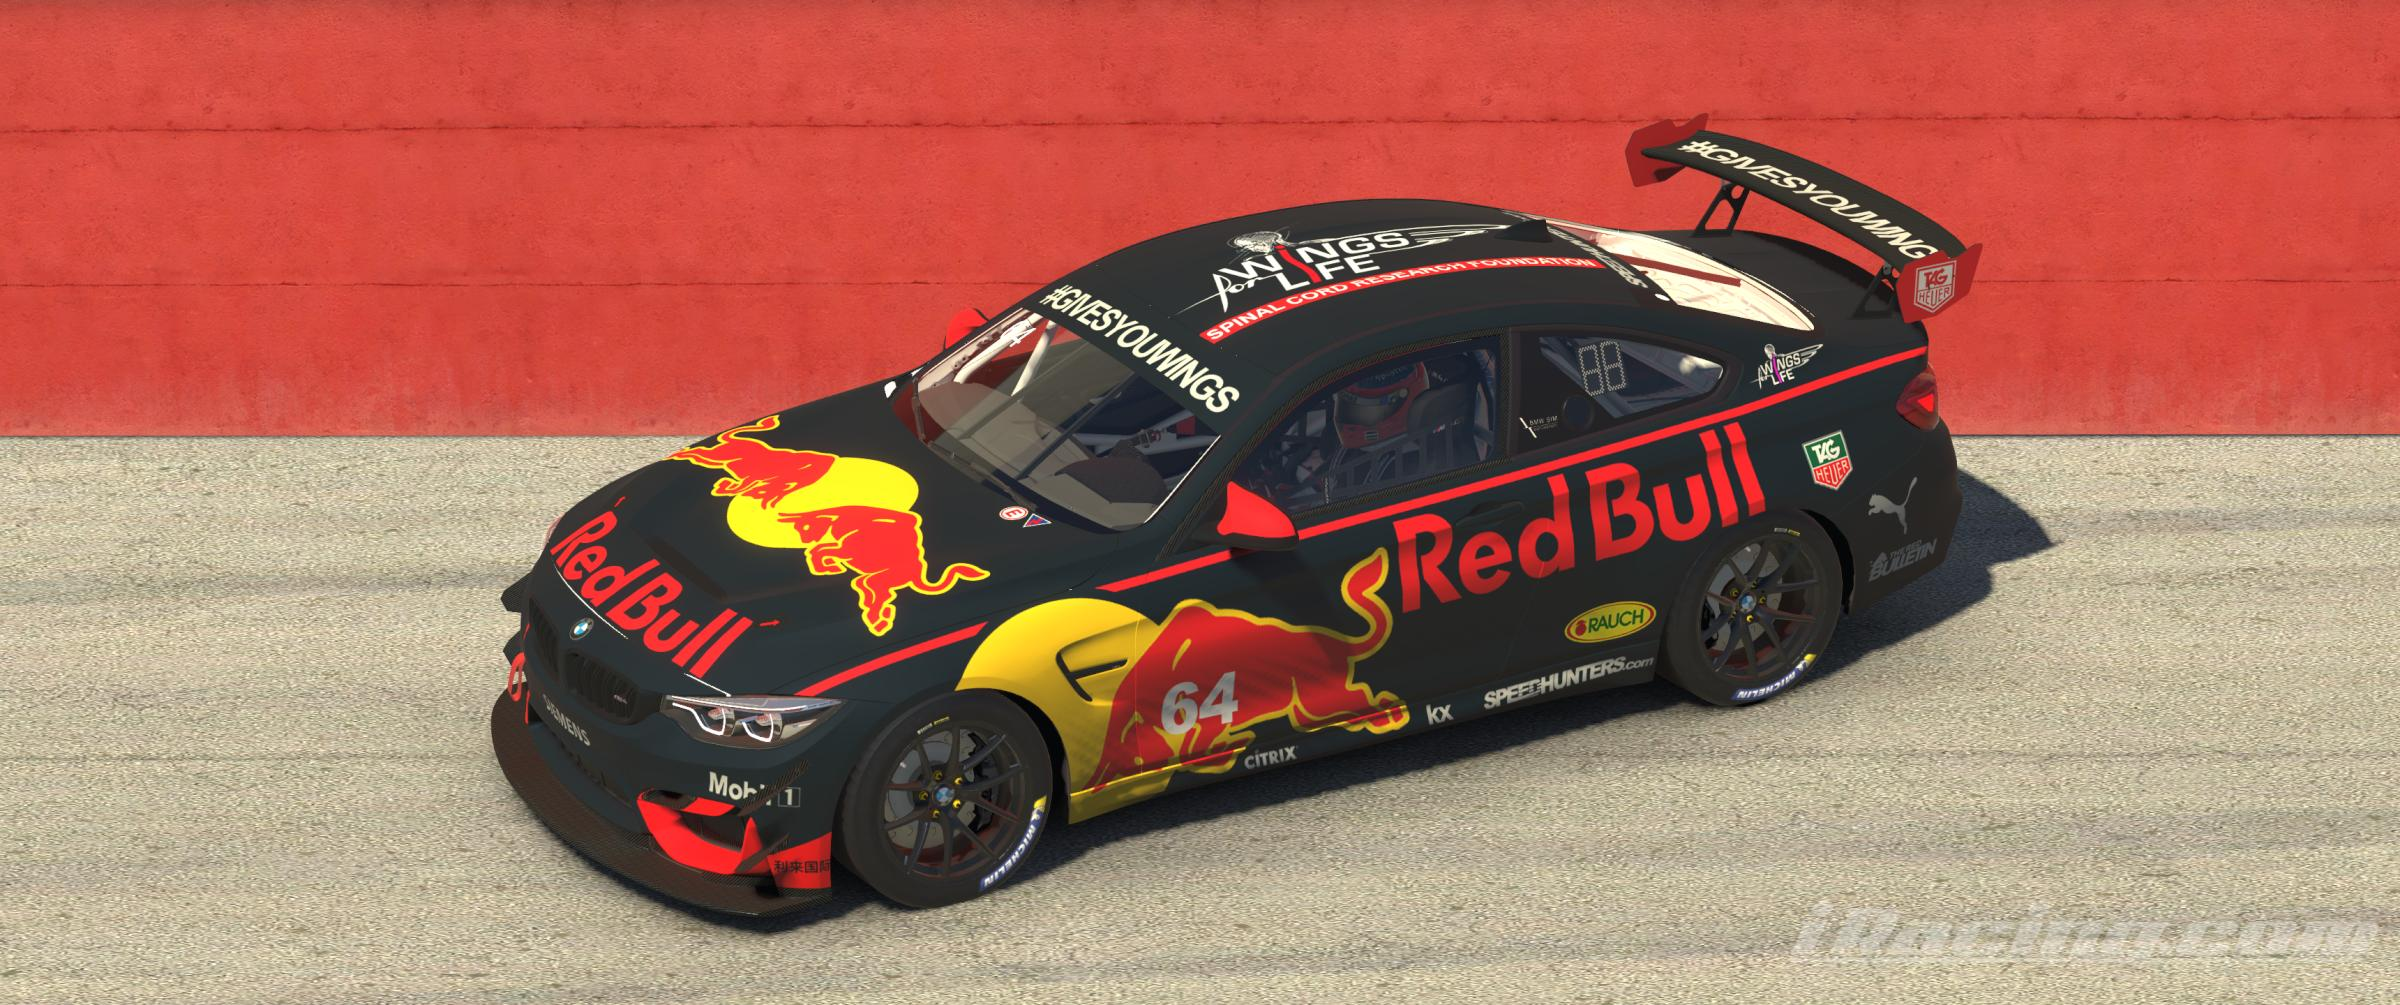 Preview of Red Bull BMW M4 GT4 by Stefan Gawlista